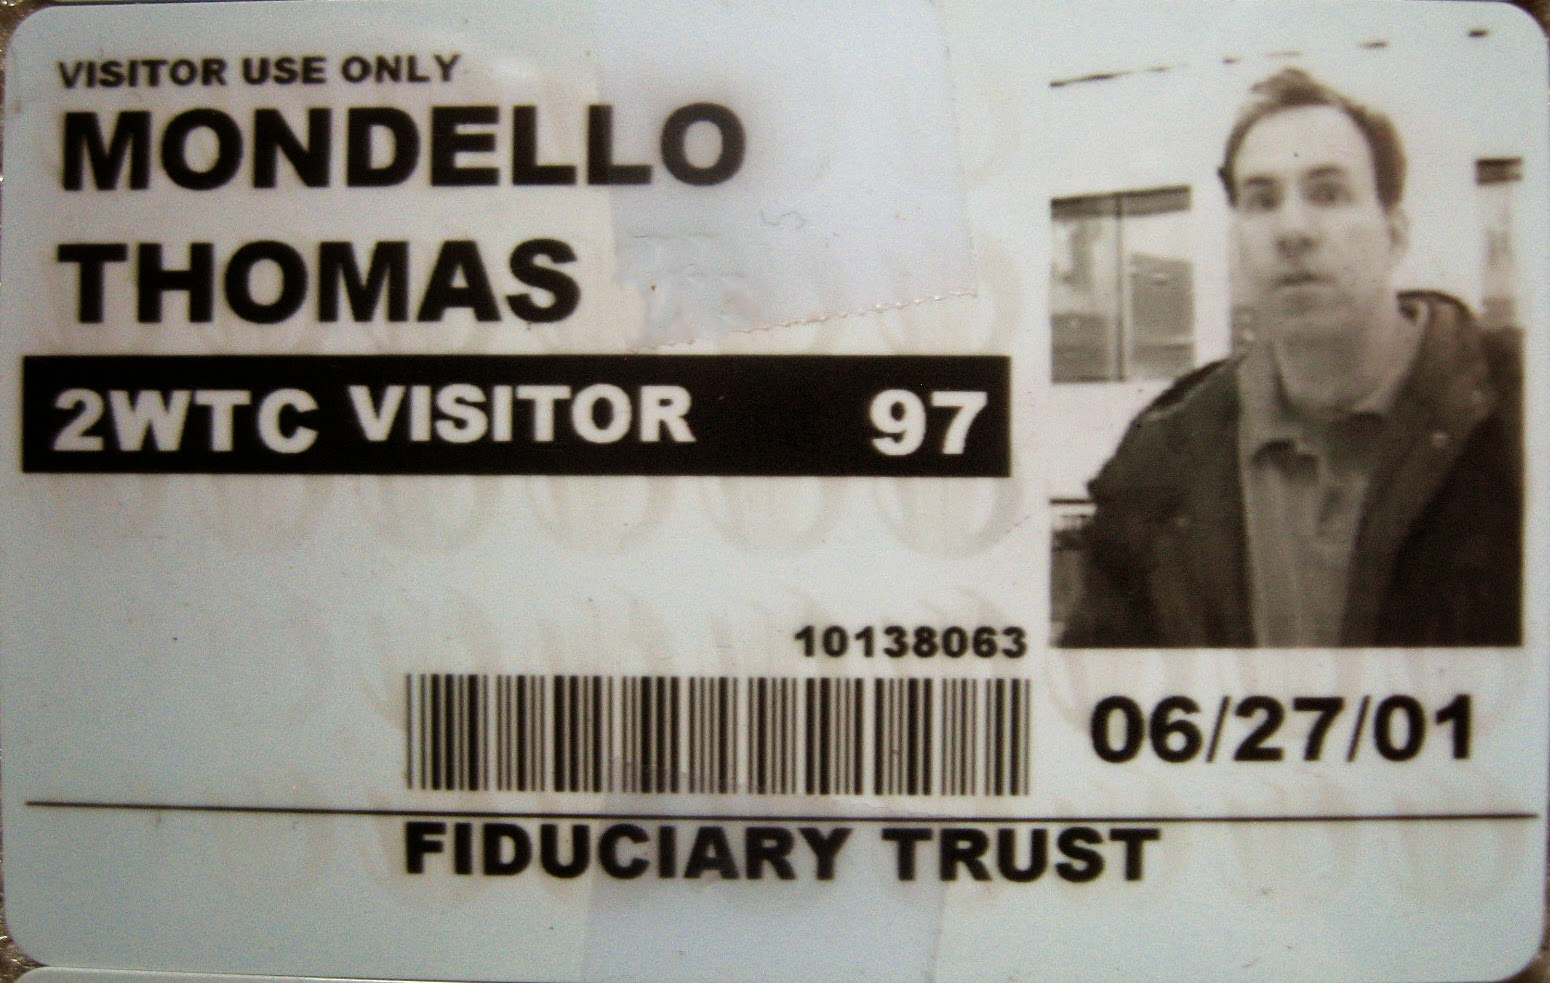 Tommy Mondello World Trade Center pass June 27, 2001